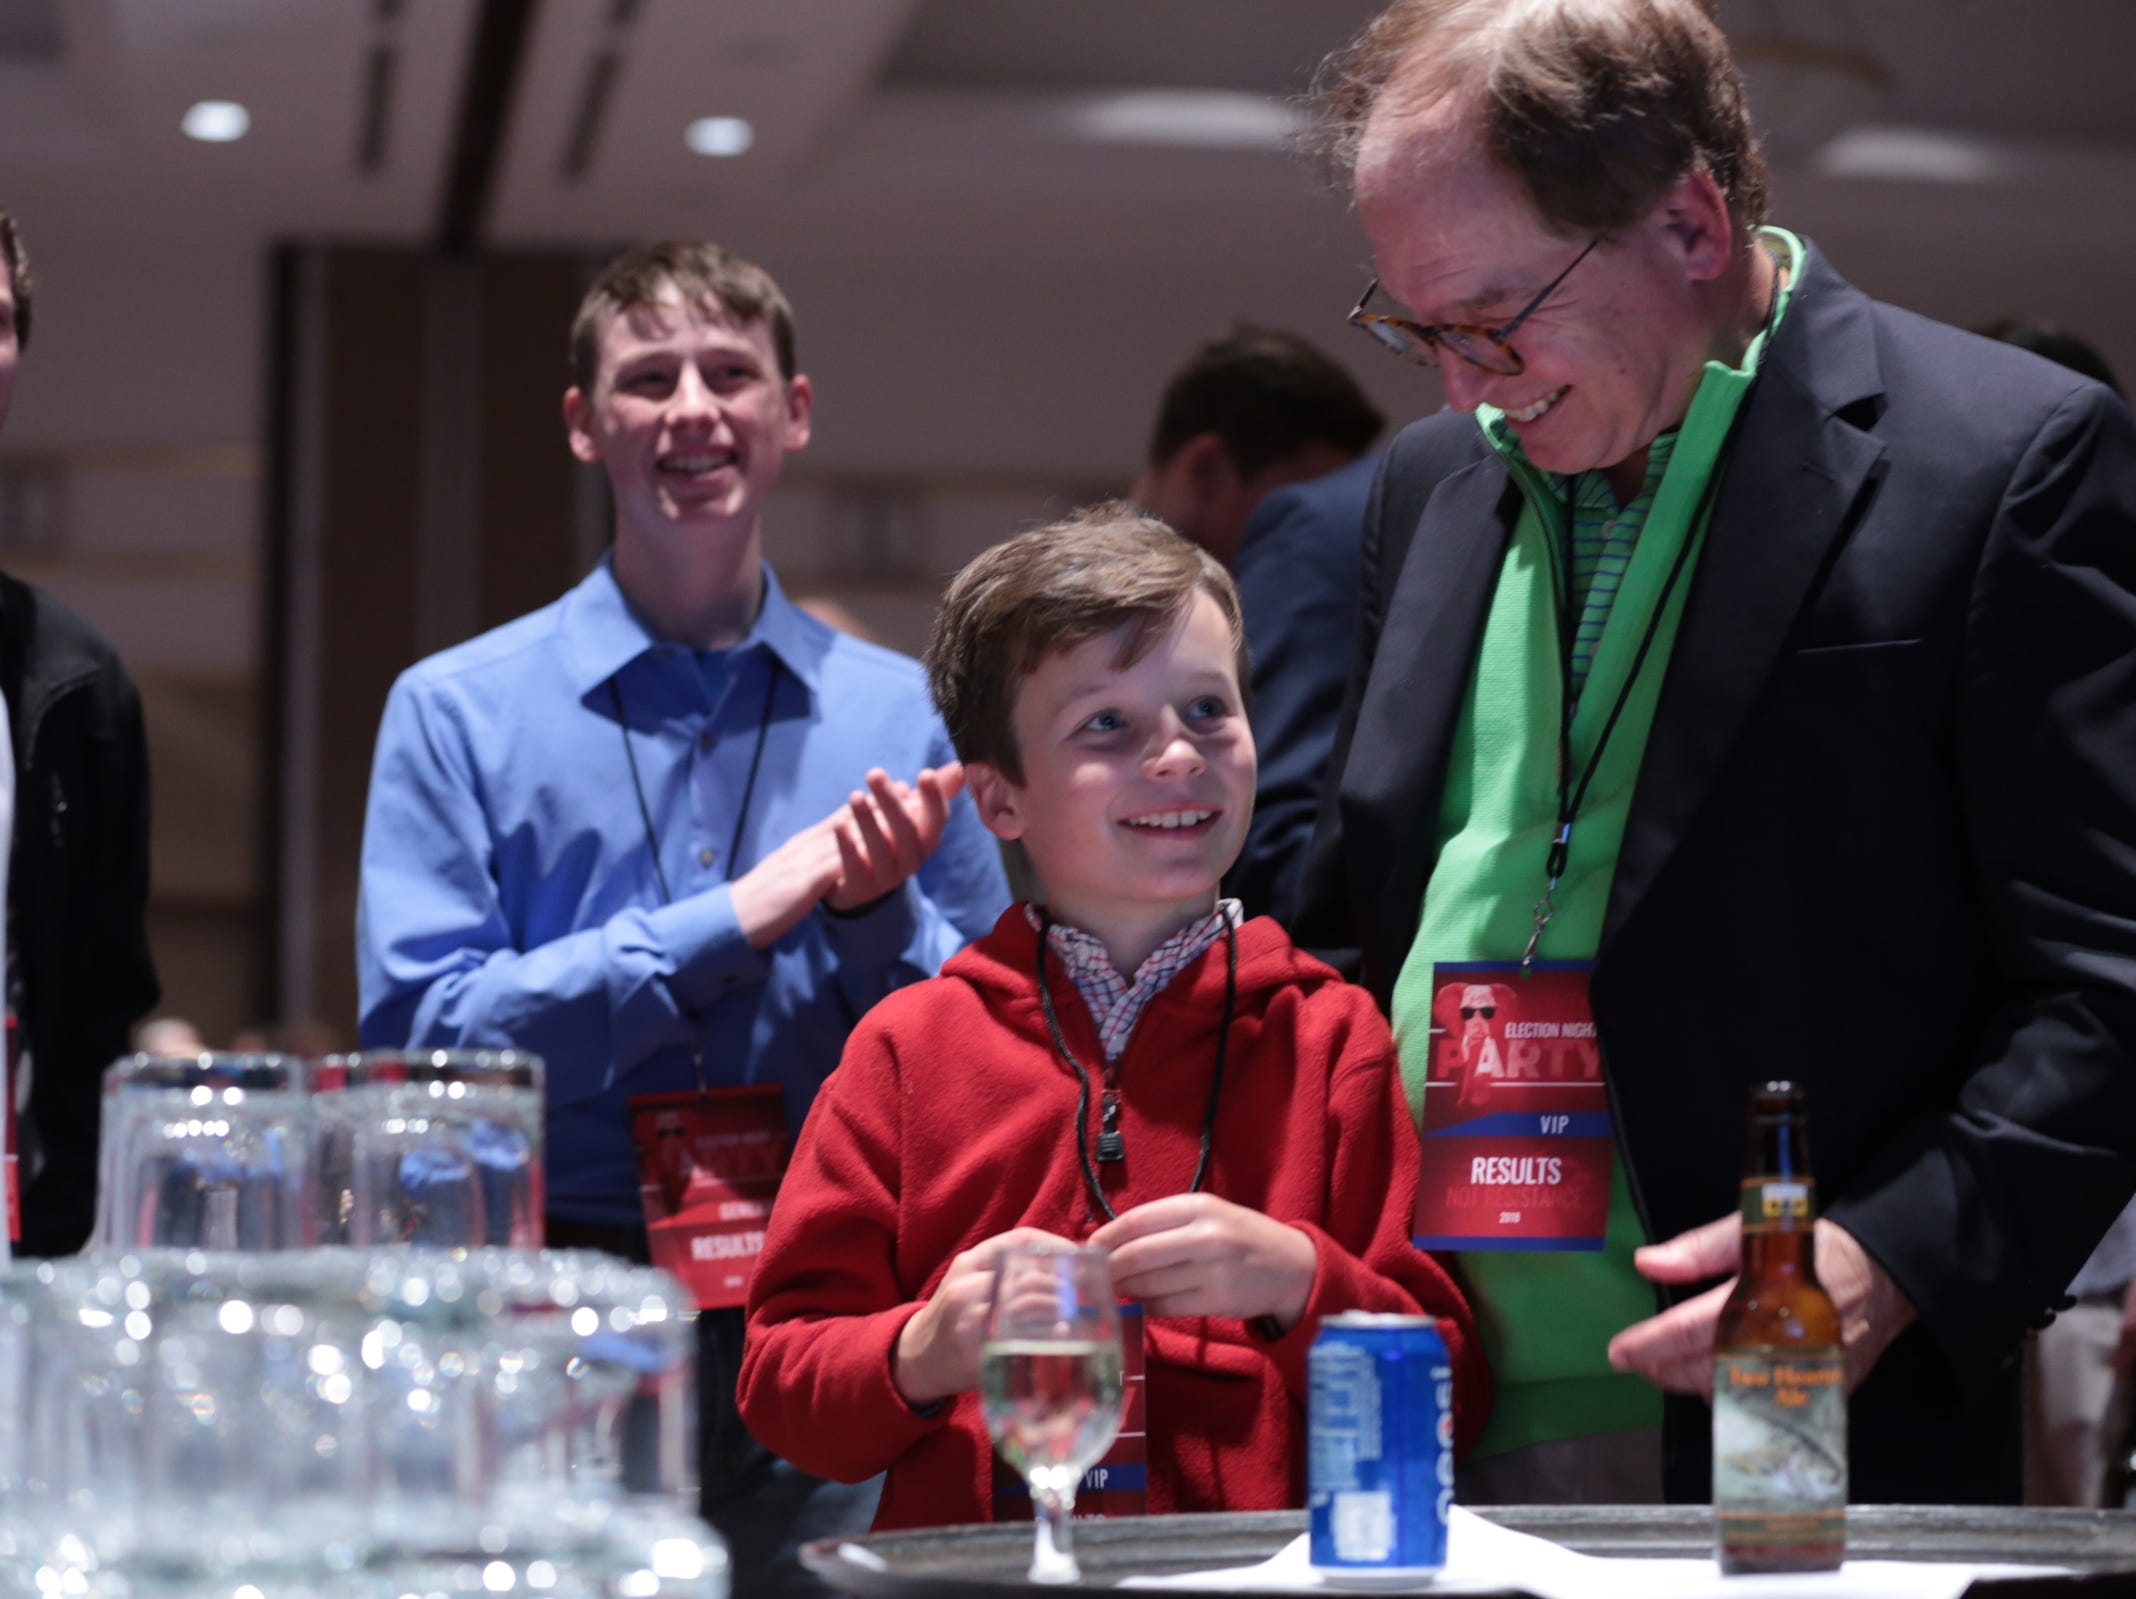 Kurt Holland of Ann Arbor and his son Keating Holland watch results during an Michigan Republican midterm election night party at the Lansing Center in Lansing on Tuesday, November 6, 2018.